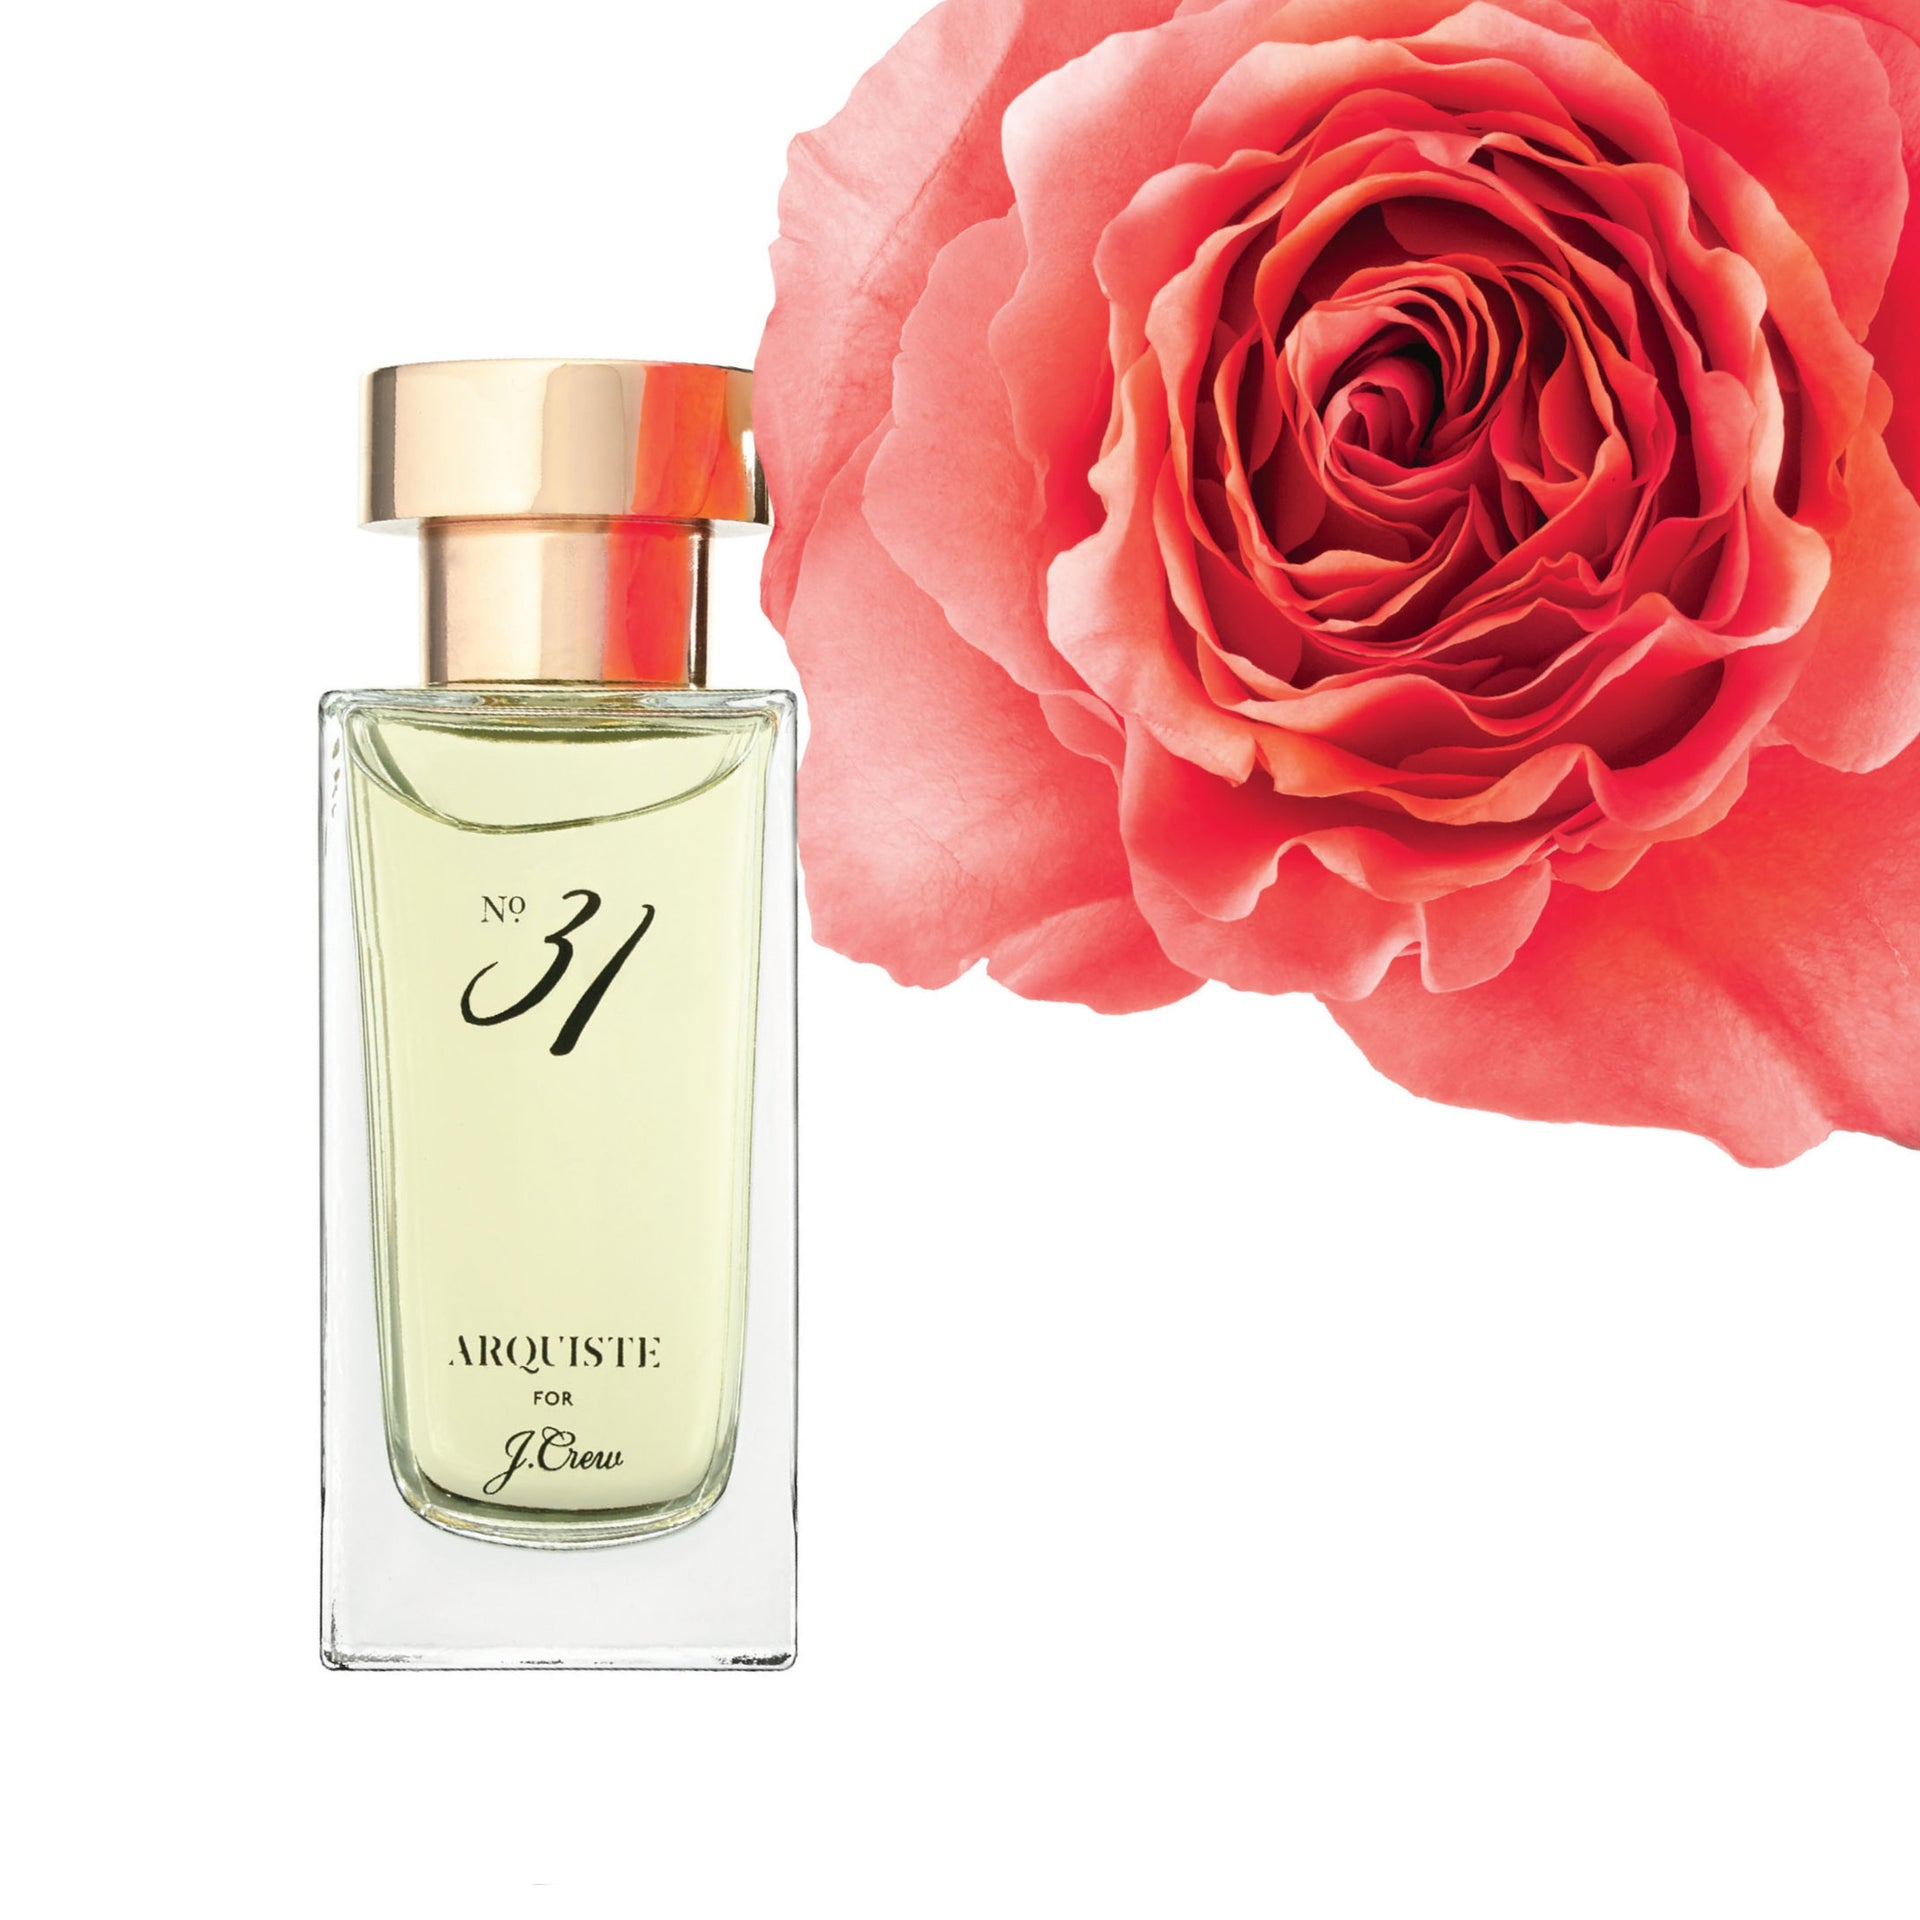 ARQUISTE No.31 scent perfume unisex for J.Crew JCrew No. 31 Jenna Lyons fragrance